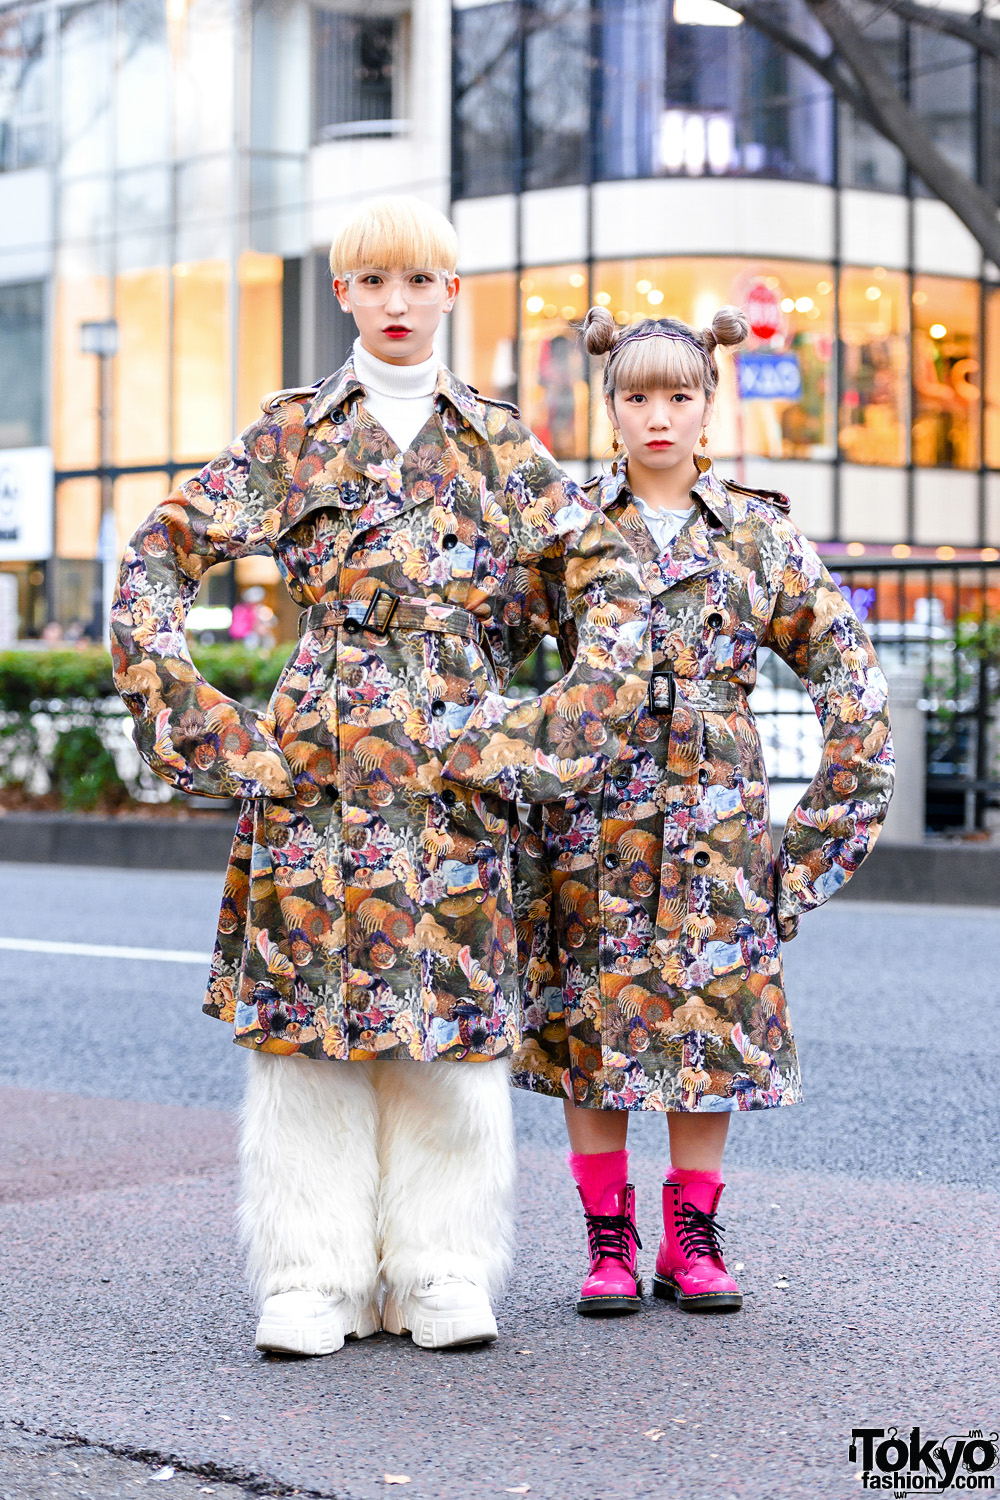 Tempura Kidz x Anrealage Japanese Street Styles w/ Belted Trench Coats, Furry Pants & Pink Dr. Martens